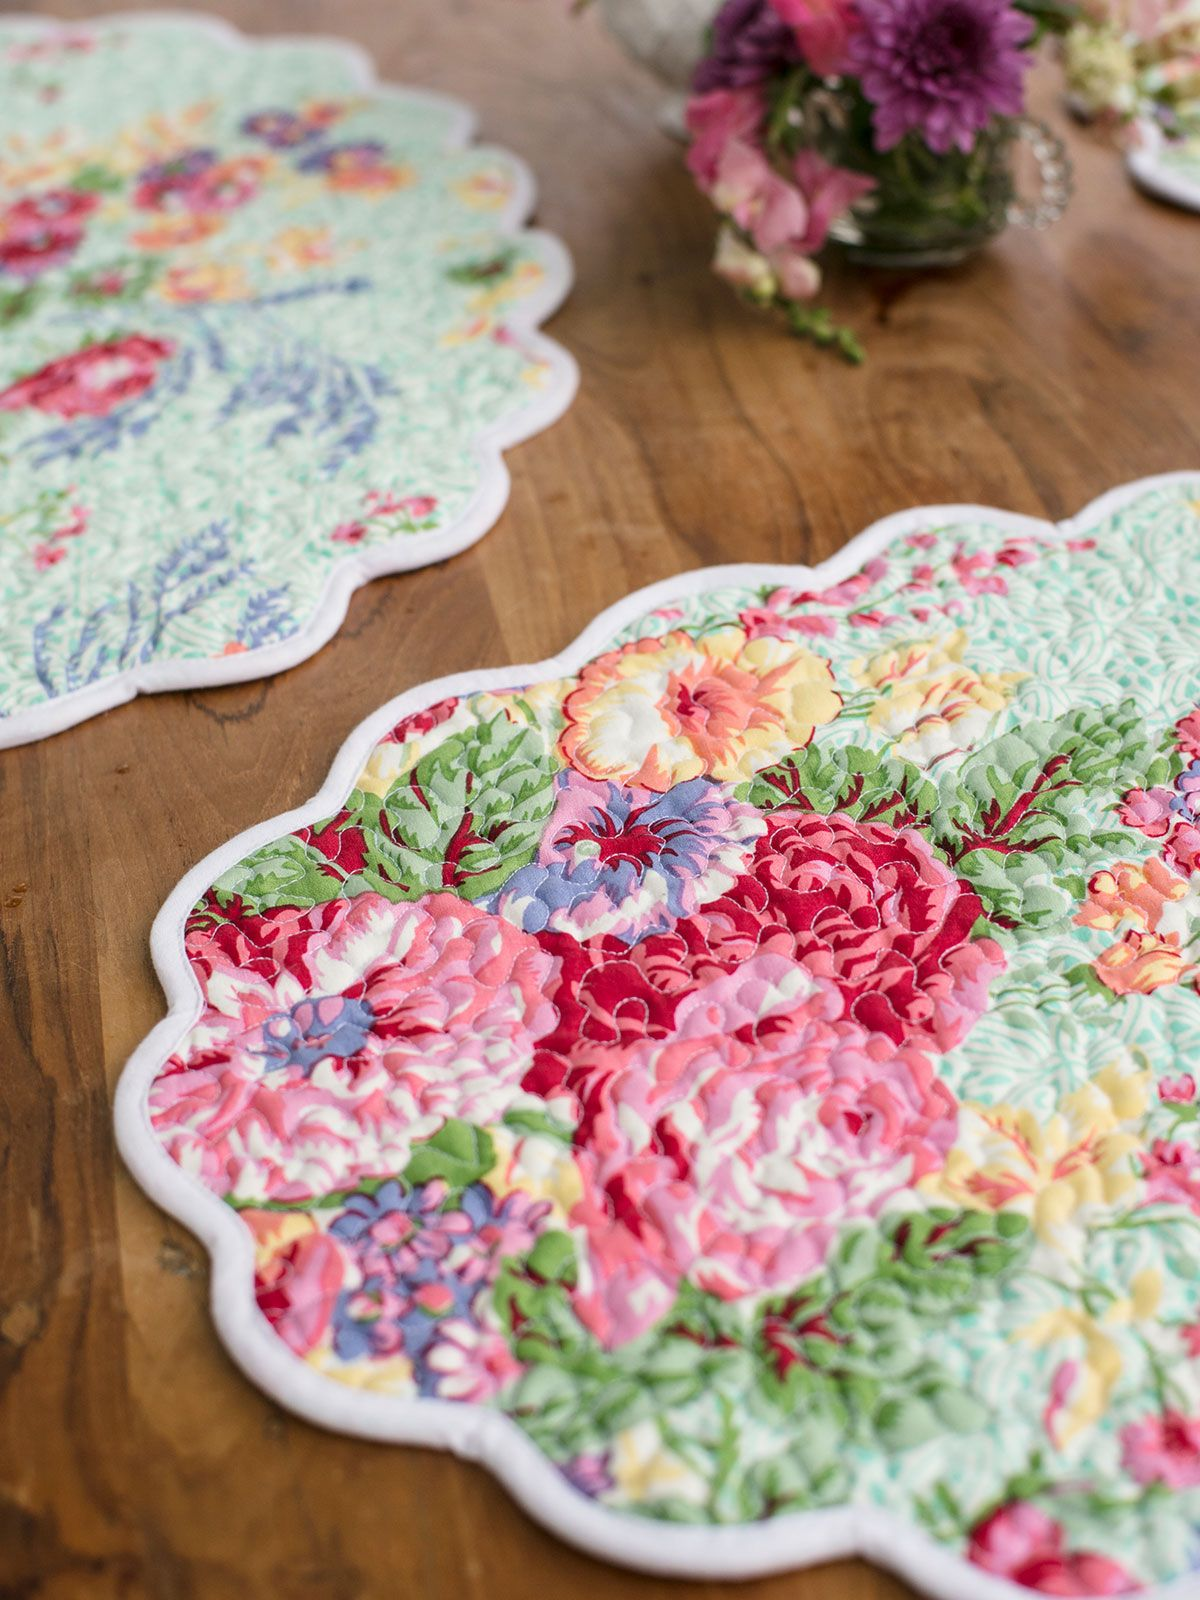 Pin By Kathy Minnis On Quilts In 2020 Table Linens Linen Placemats Table Cloth